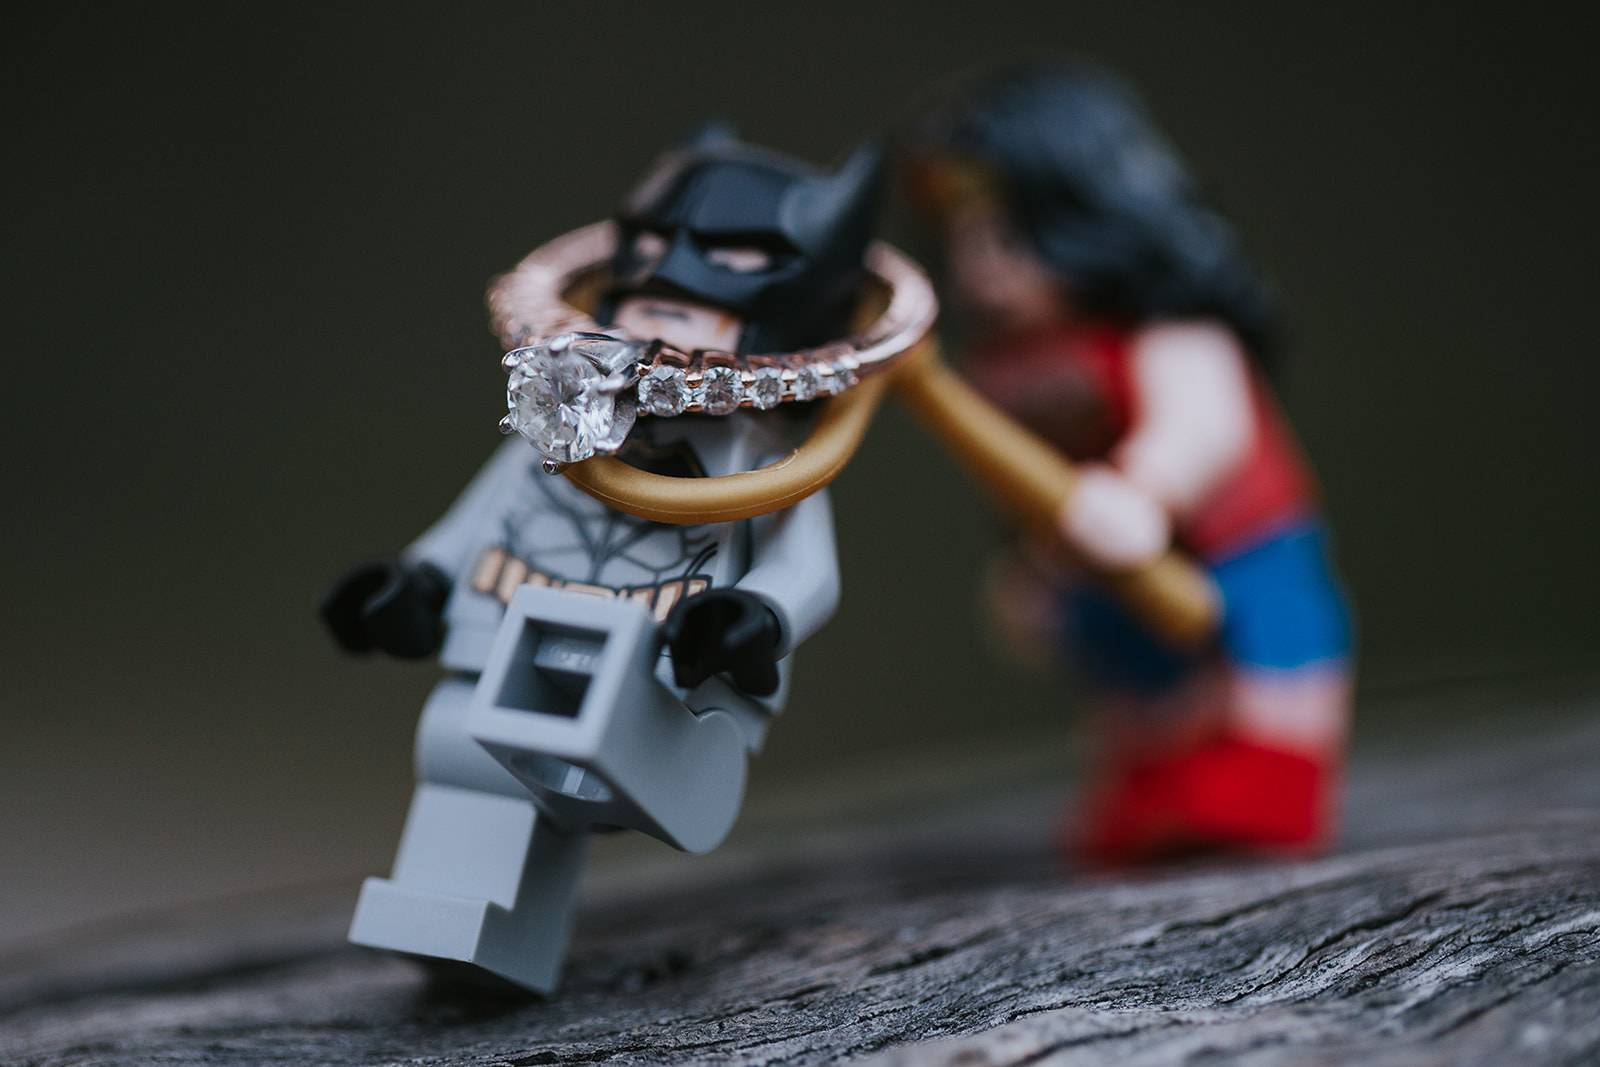 lego wonder woman lassoing batman with engagement ring